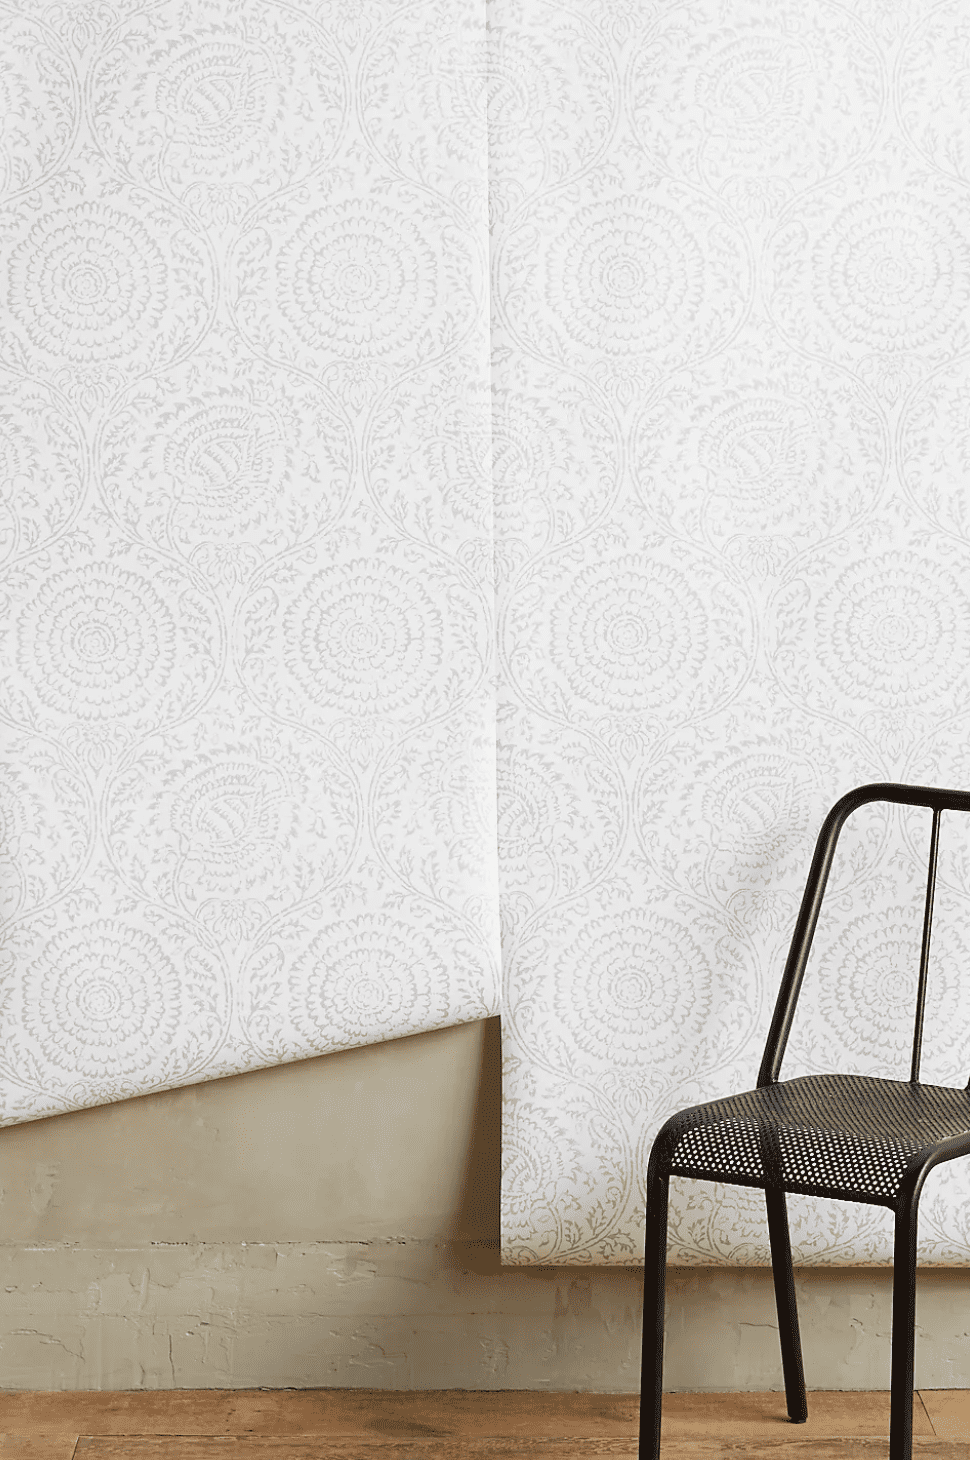 Subtle floral printed wallpaper, which is currently for sale at Anthropologie